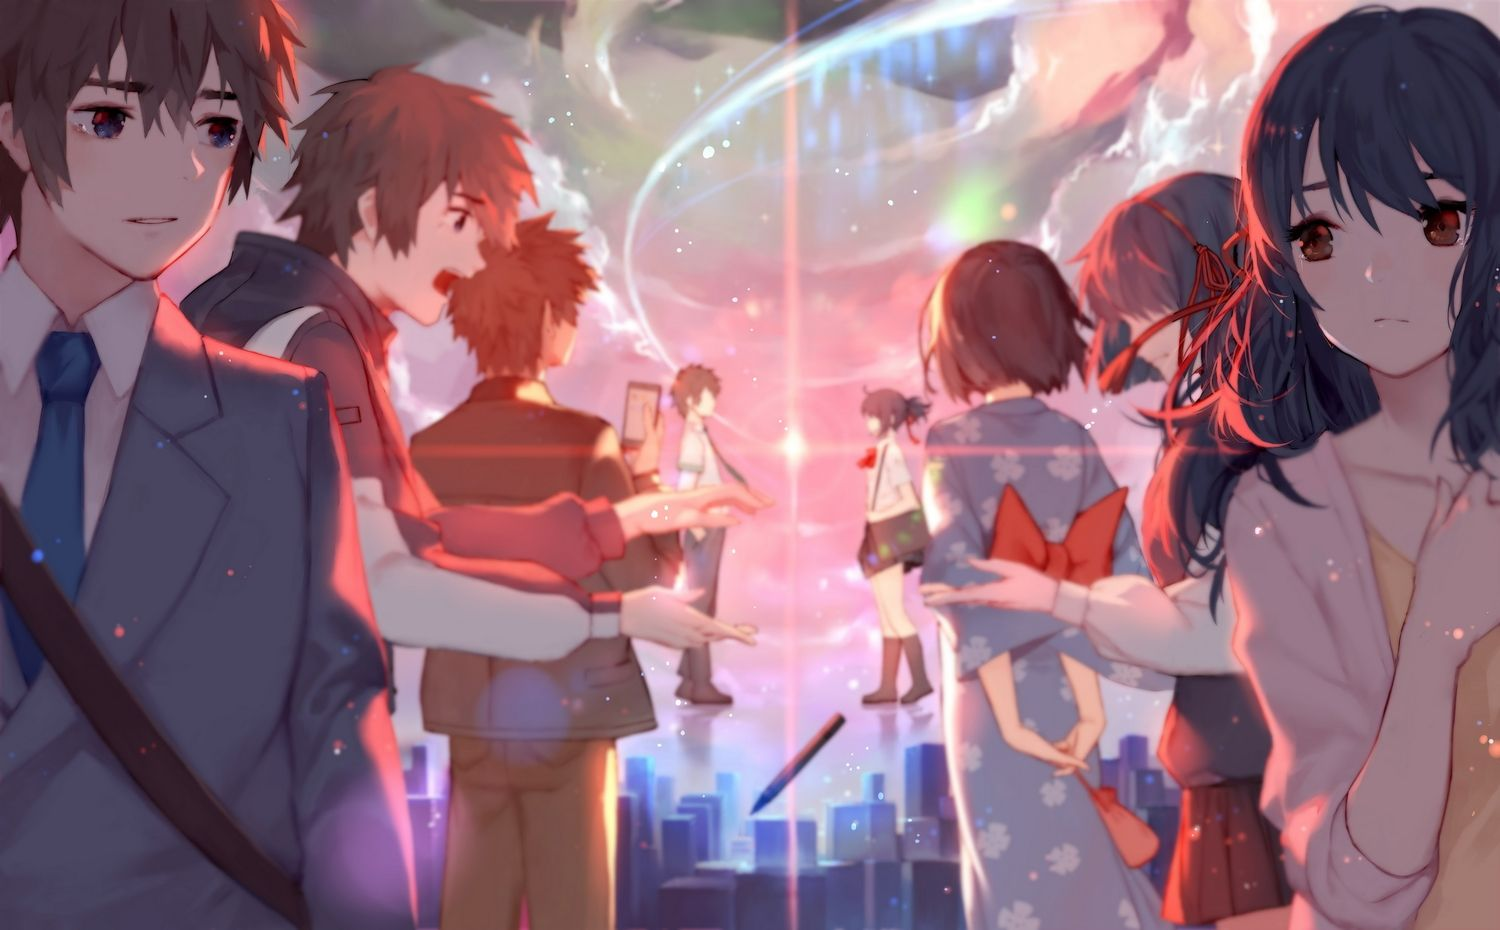 blue eyes bow brown eyes brown hair building city clouds hoodie japanese clothes joseph lee kimi no na wa kneehighs long hair male miyamizu mitsuha phone school uniform short hair sky suit tachibana taki tie yukata | konachan.com